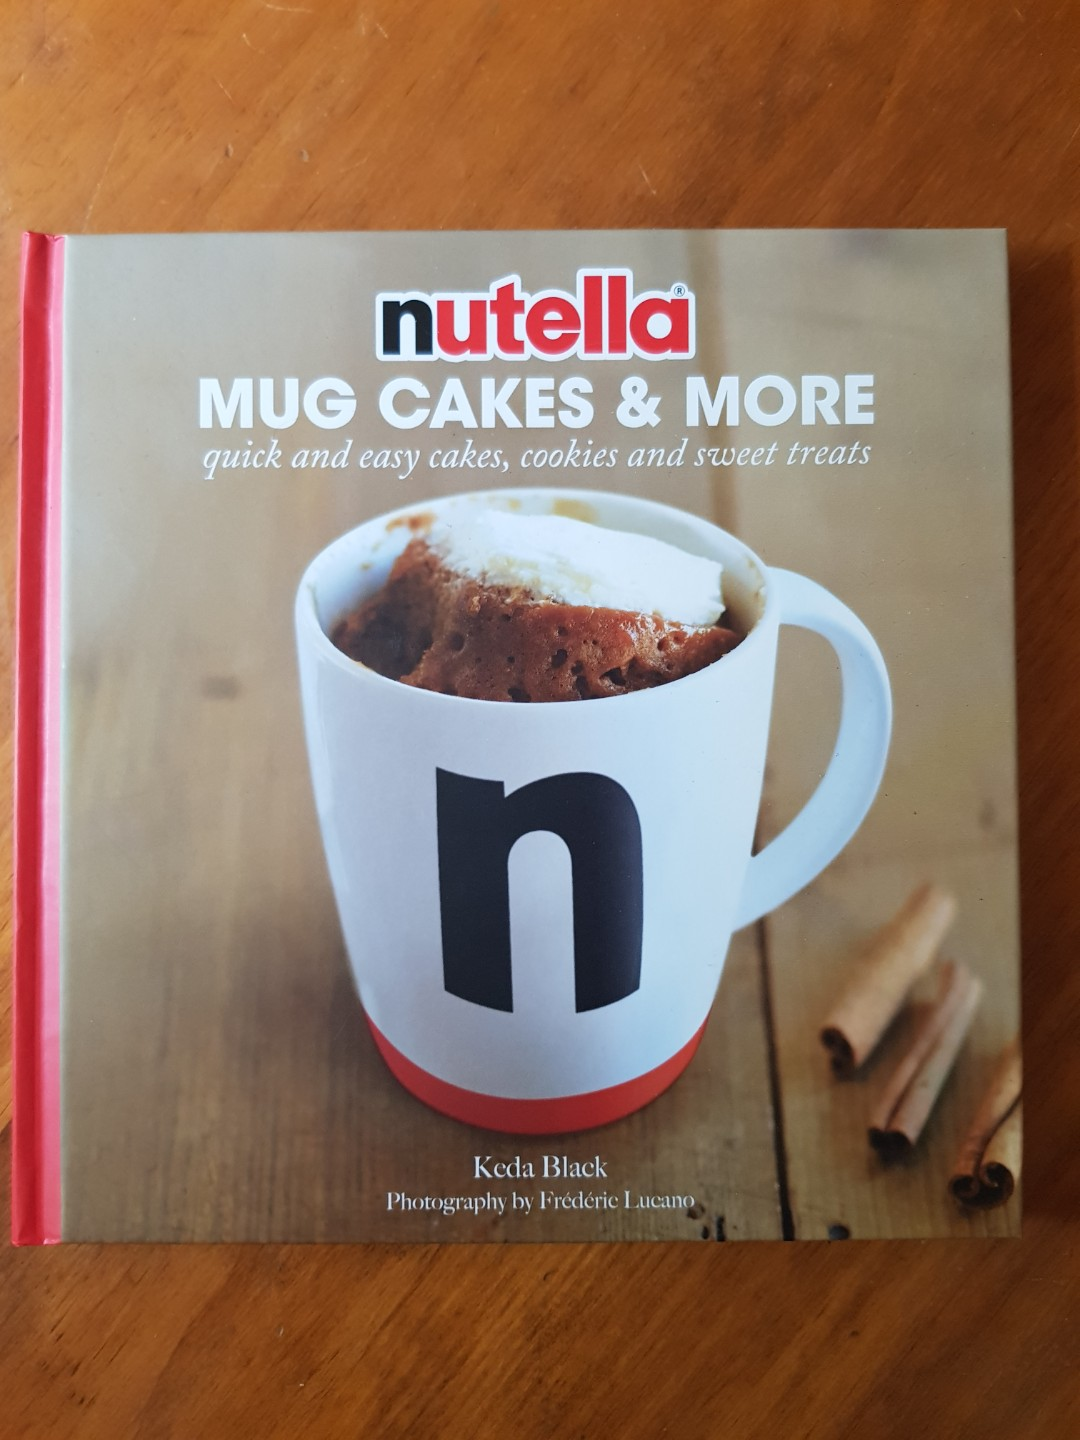 Gift - Nutella Mug Cakes & More